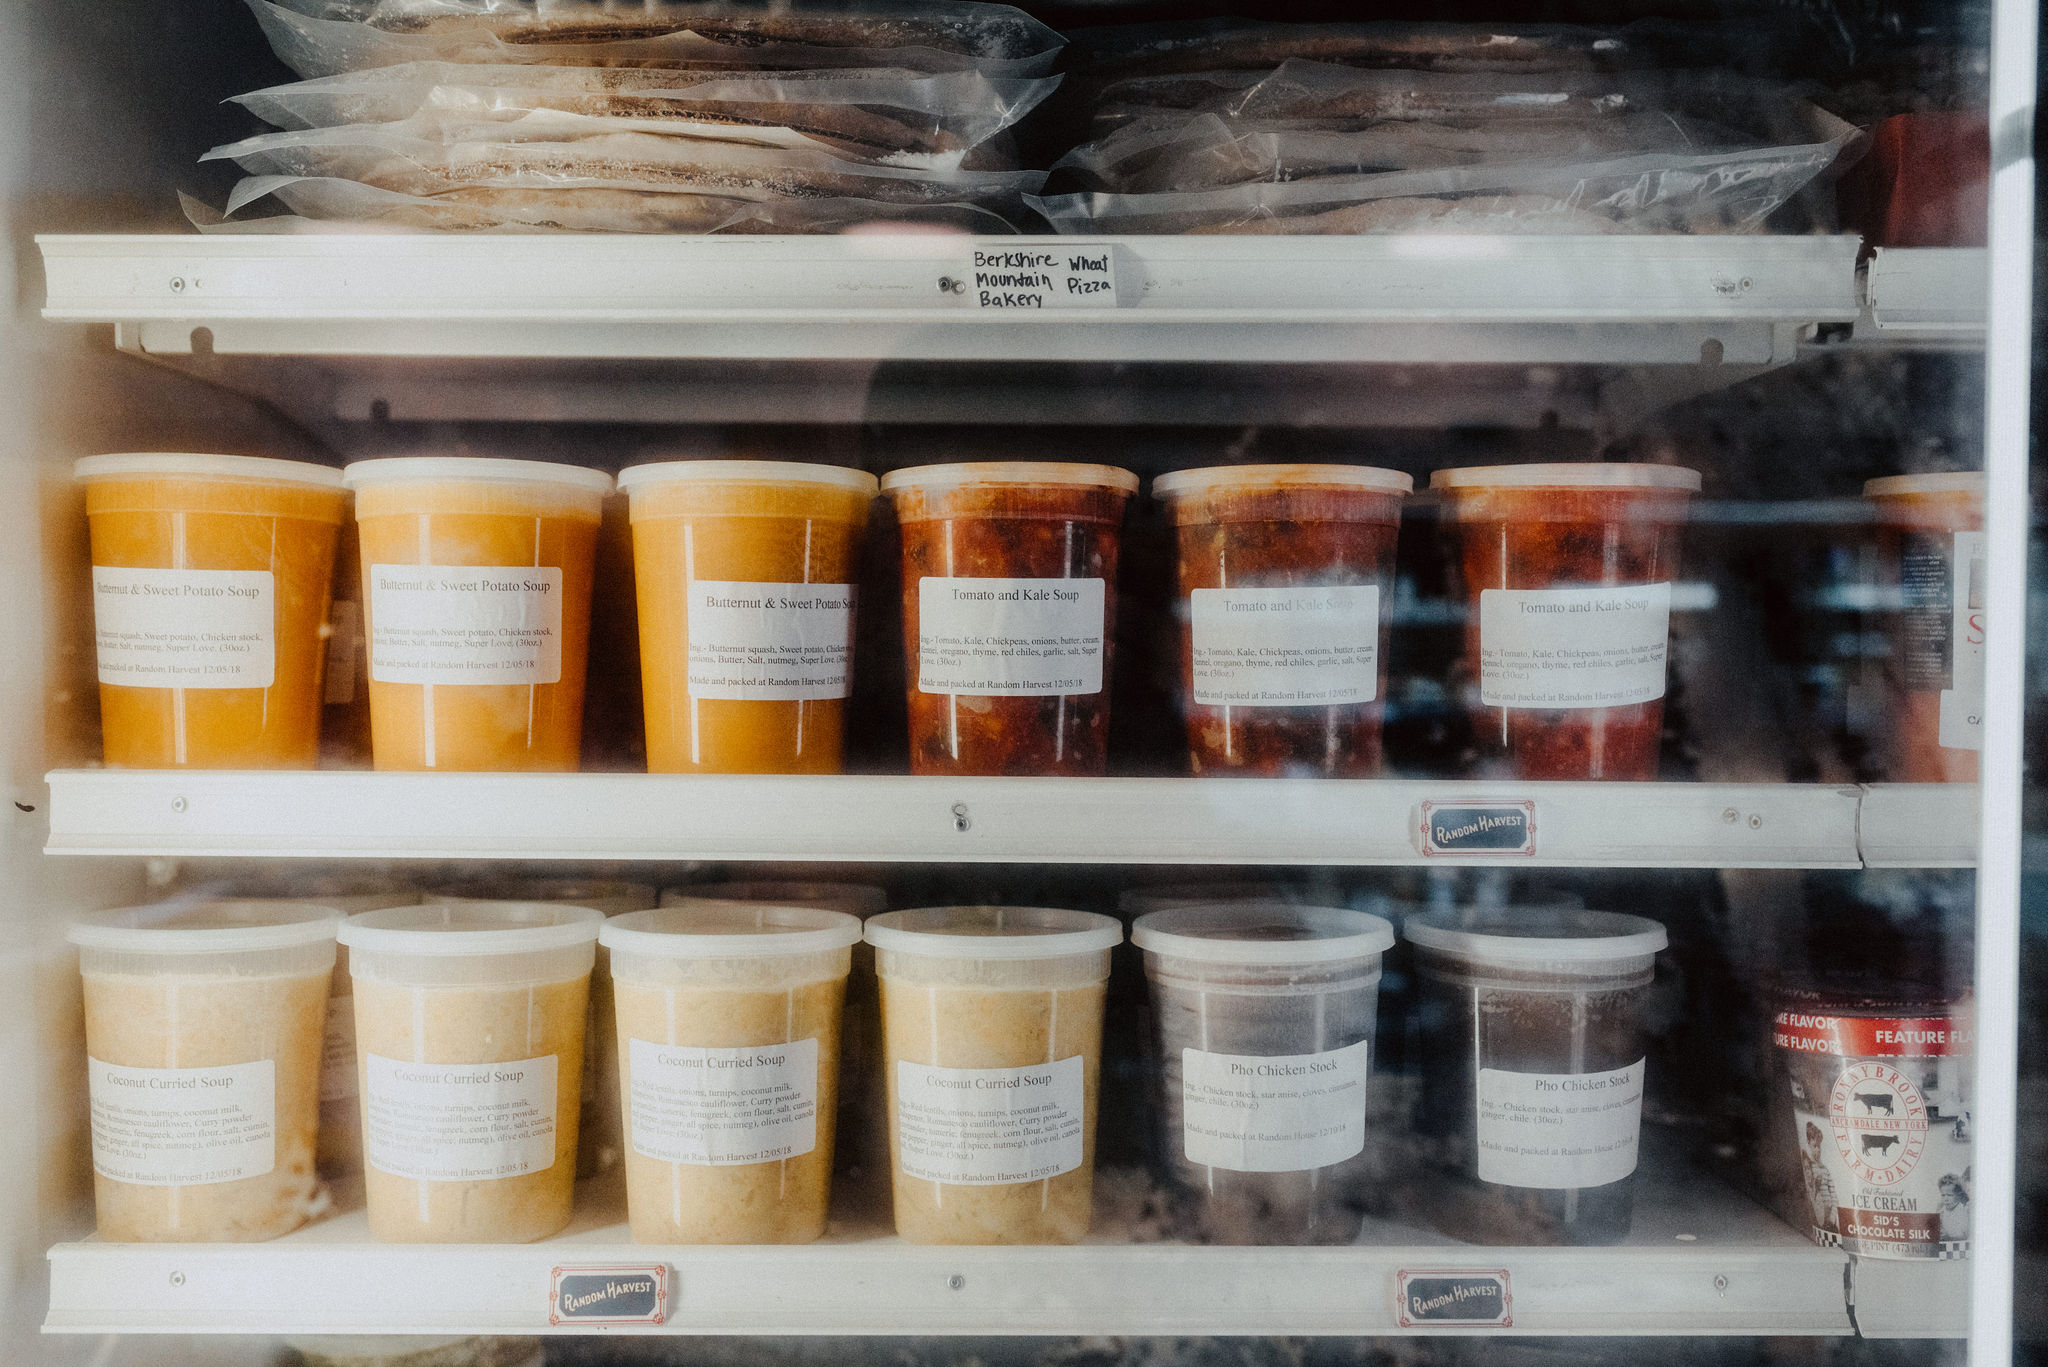 grab-n-go items for every meal